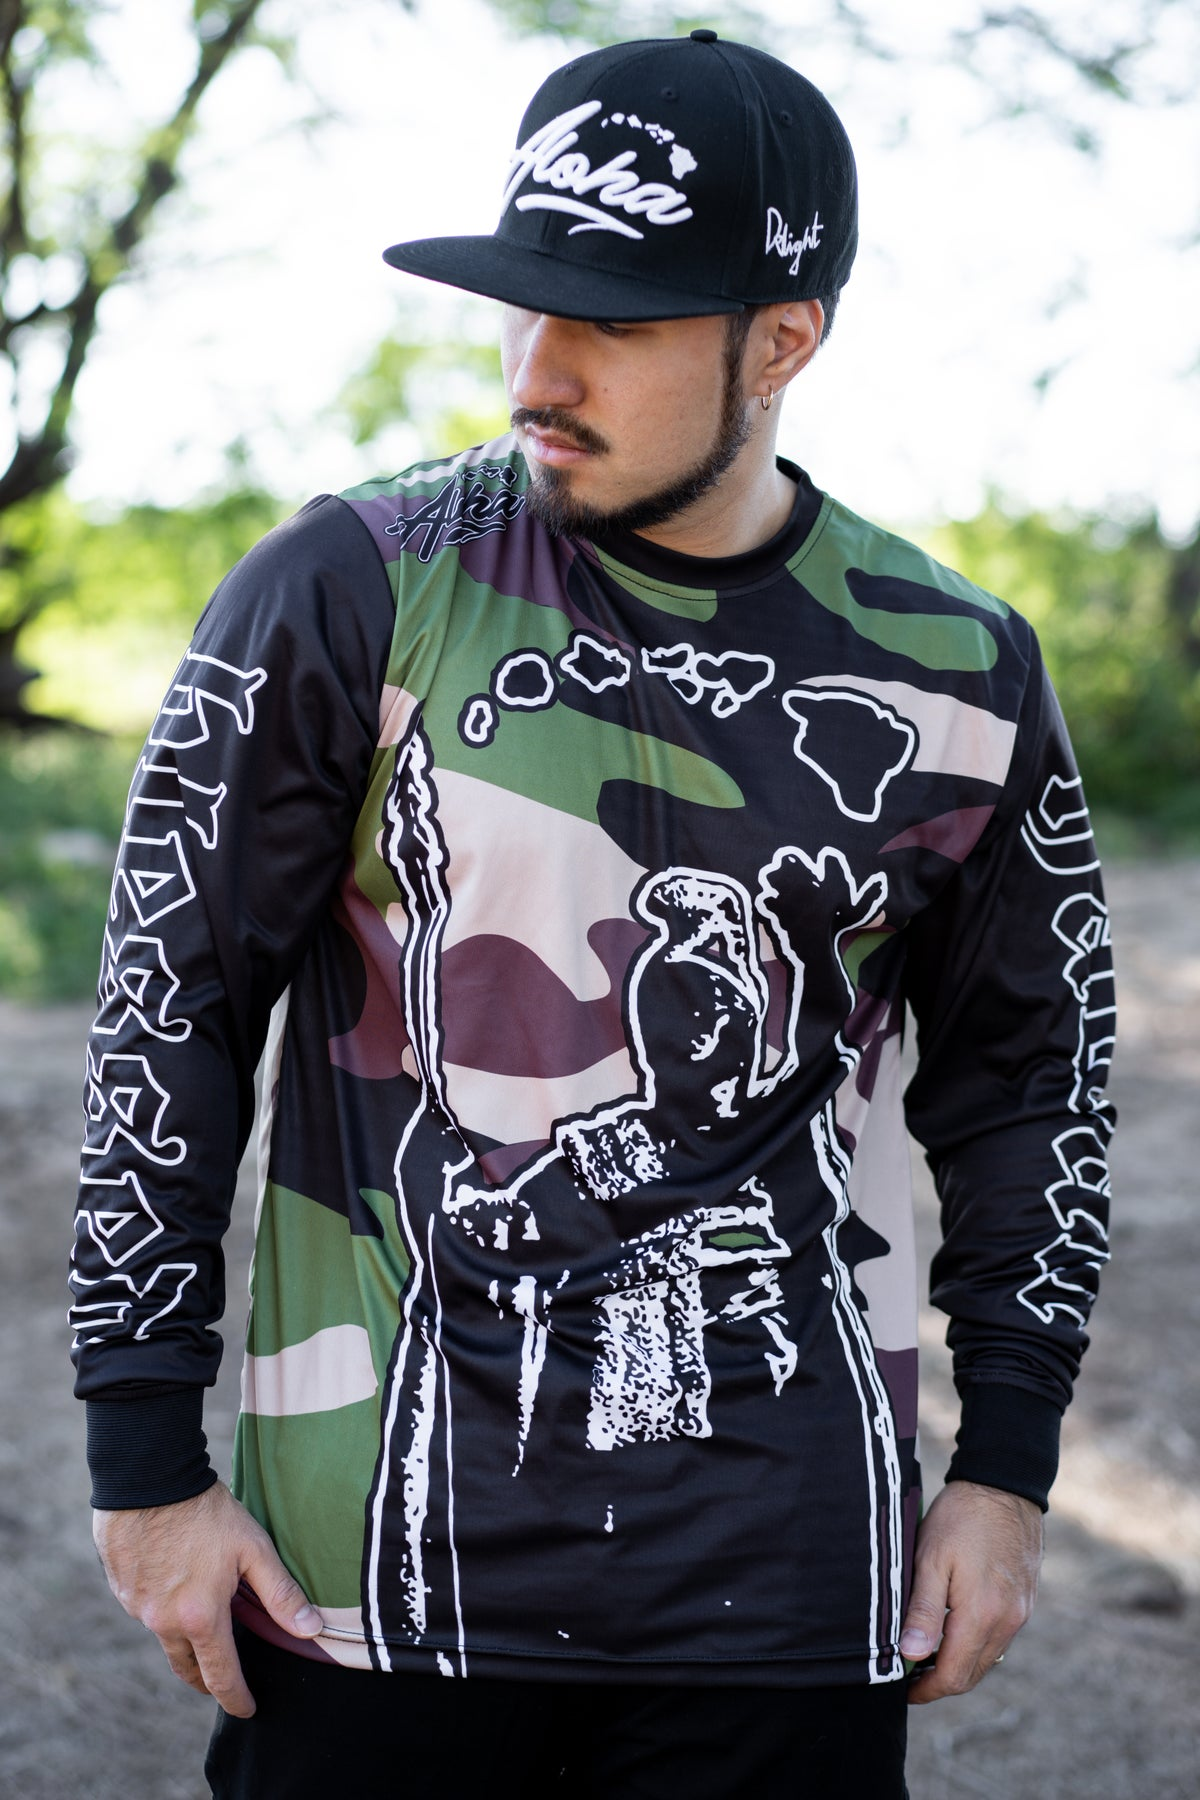 King. K Camo Sublimation Longsleeve